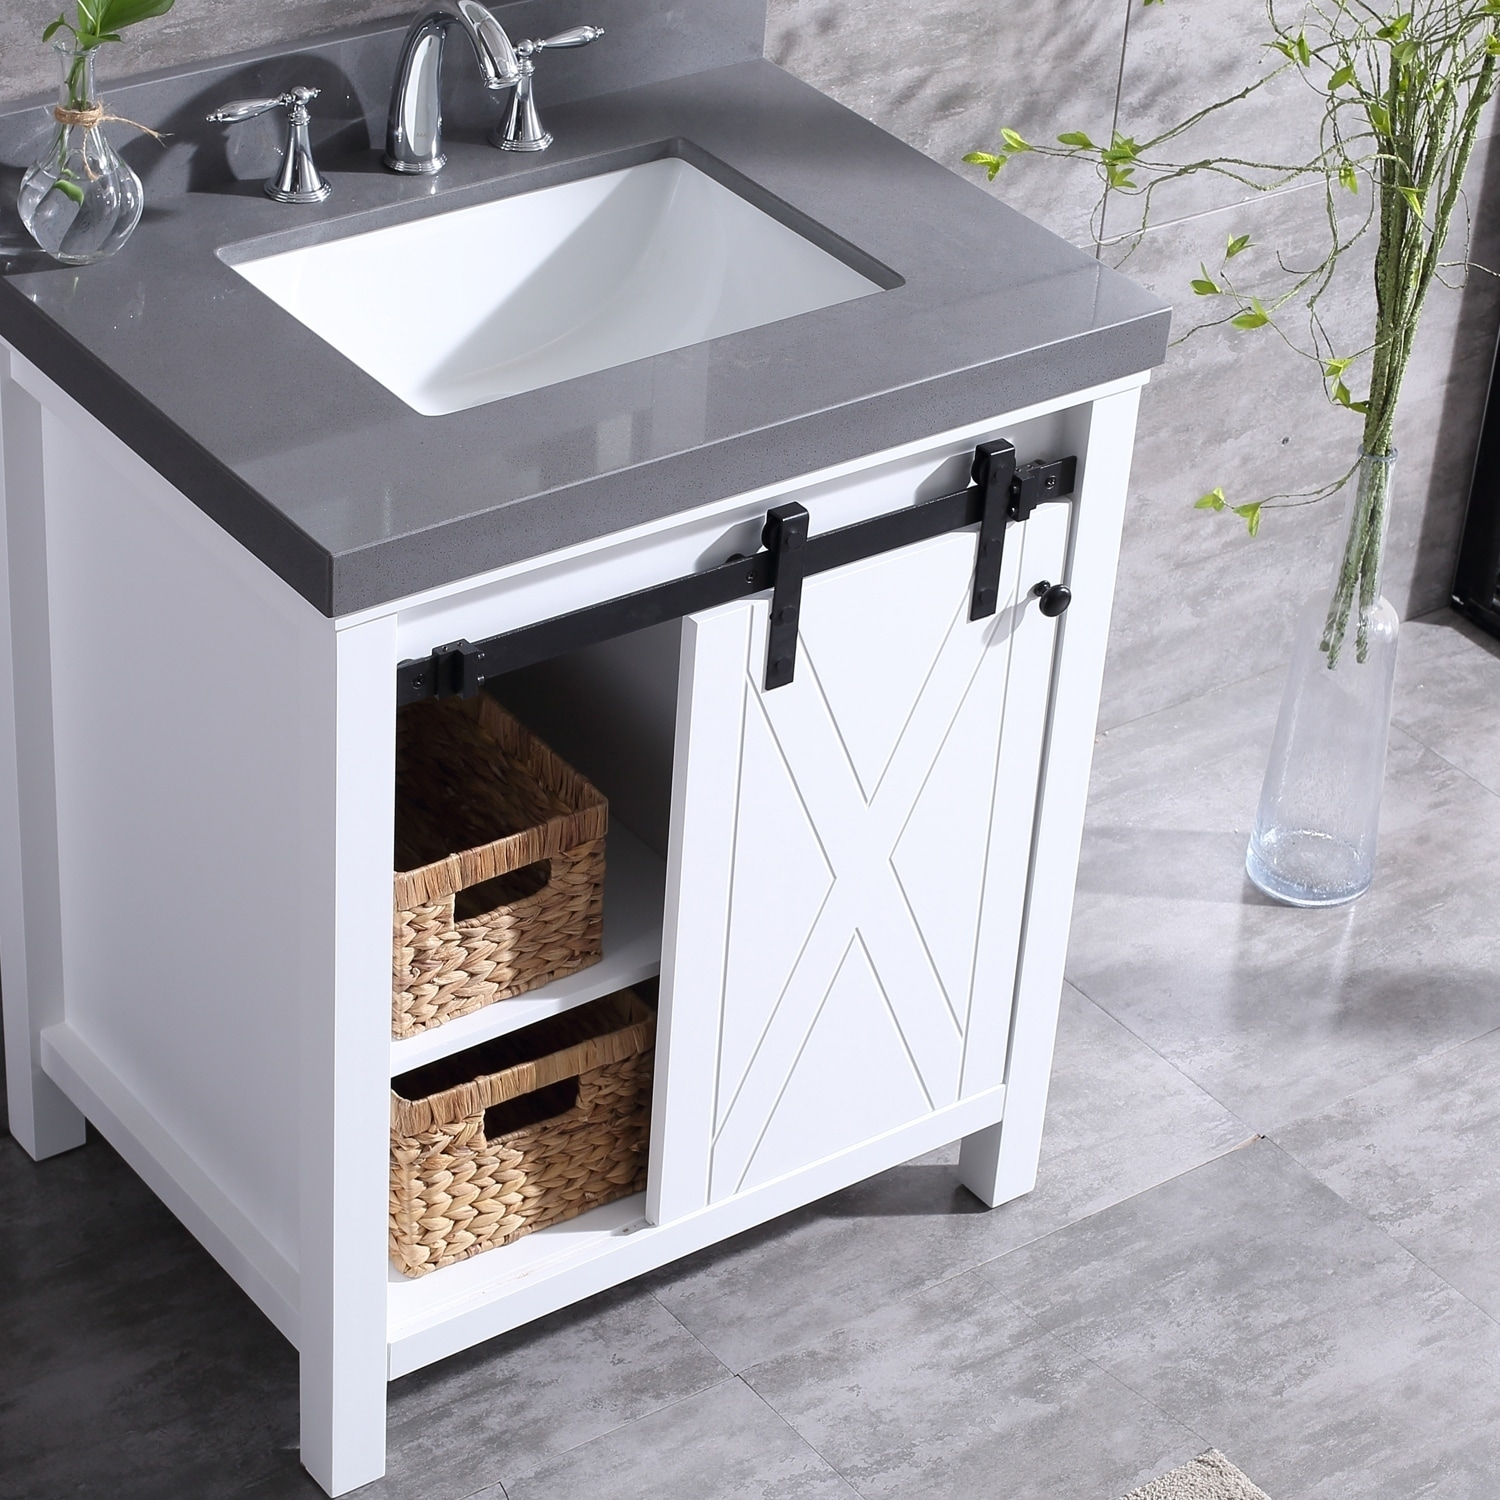 Eviva Dallas 36 In White Bathroom Vanity With Absolute Black Granite Countertop Overstock 22797365